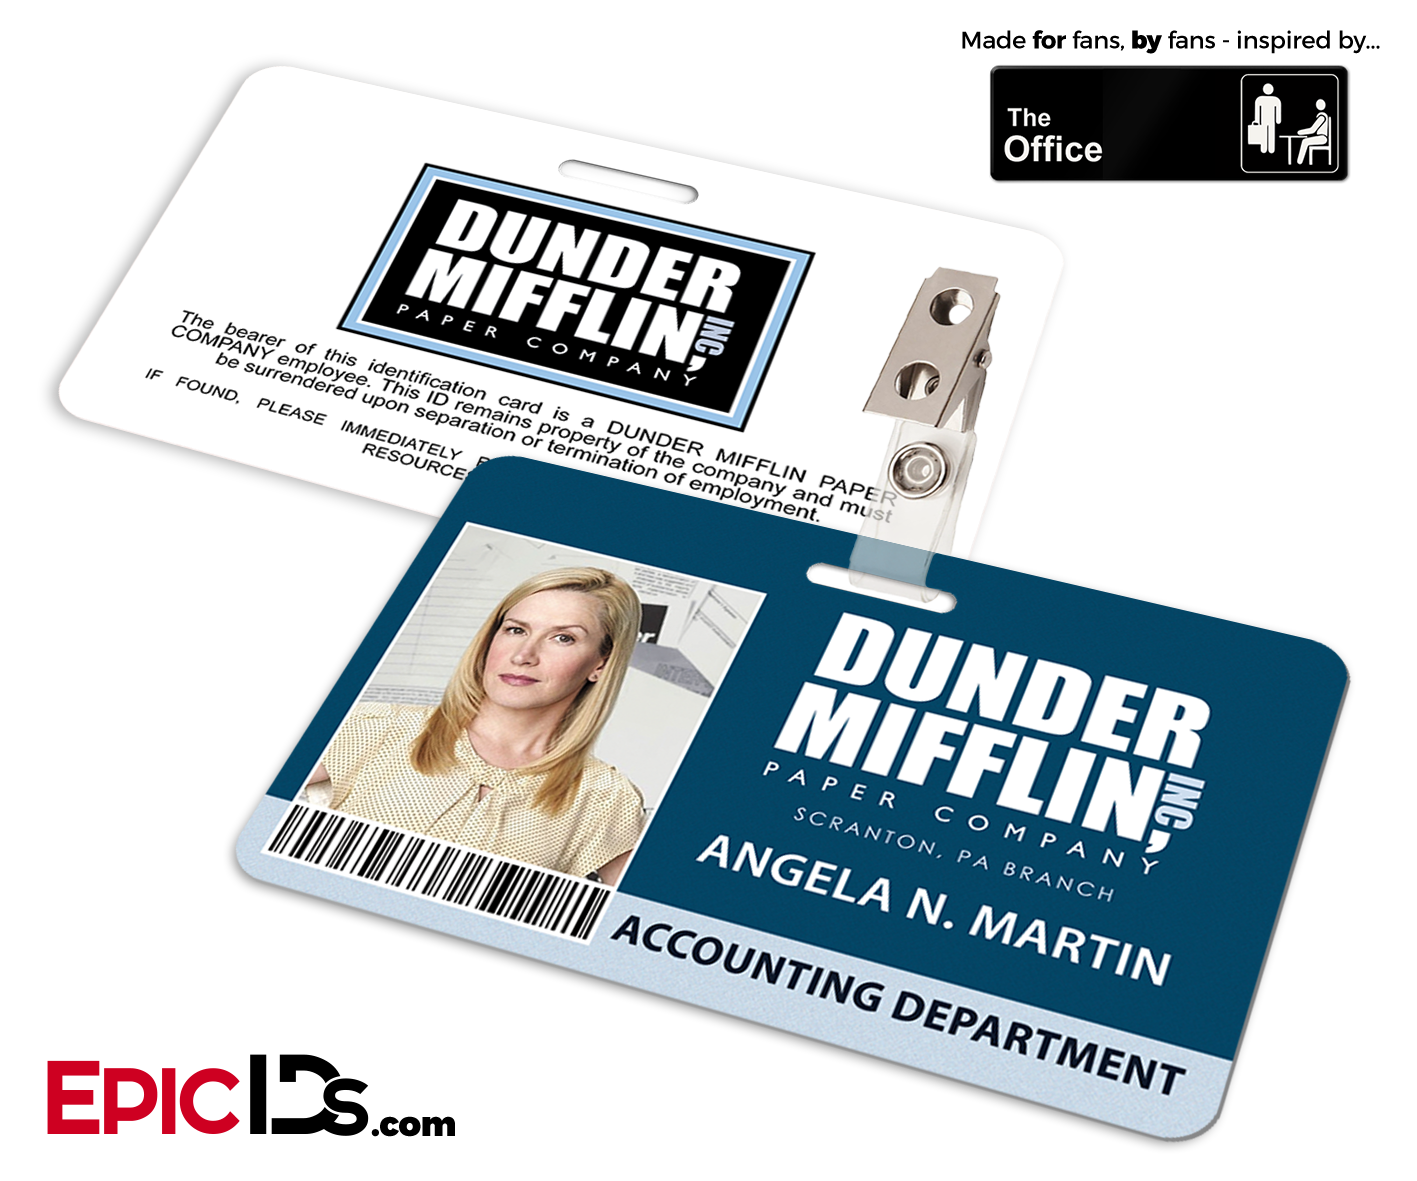 the office inspired dunder mifflin employee id badge angela